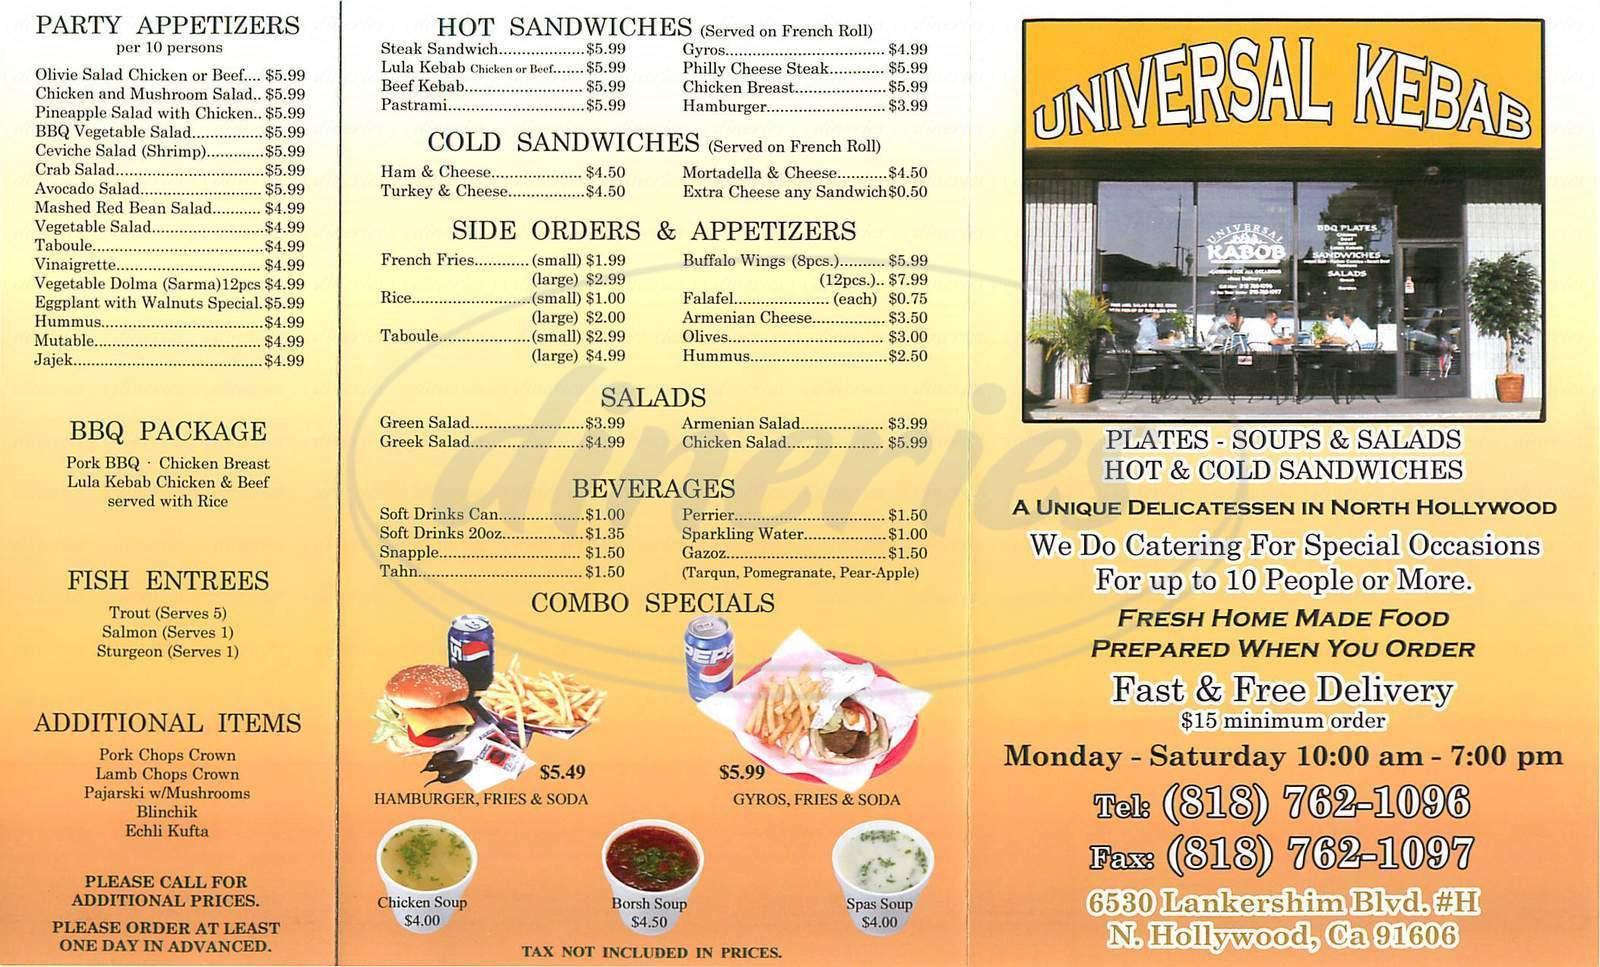 menu for Universal Kebab